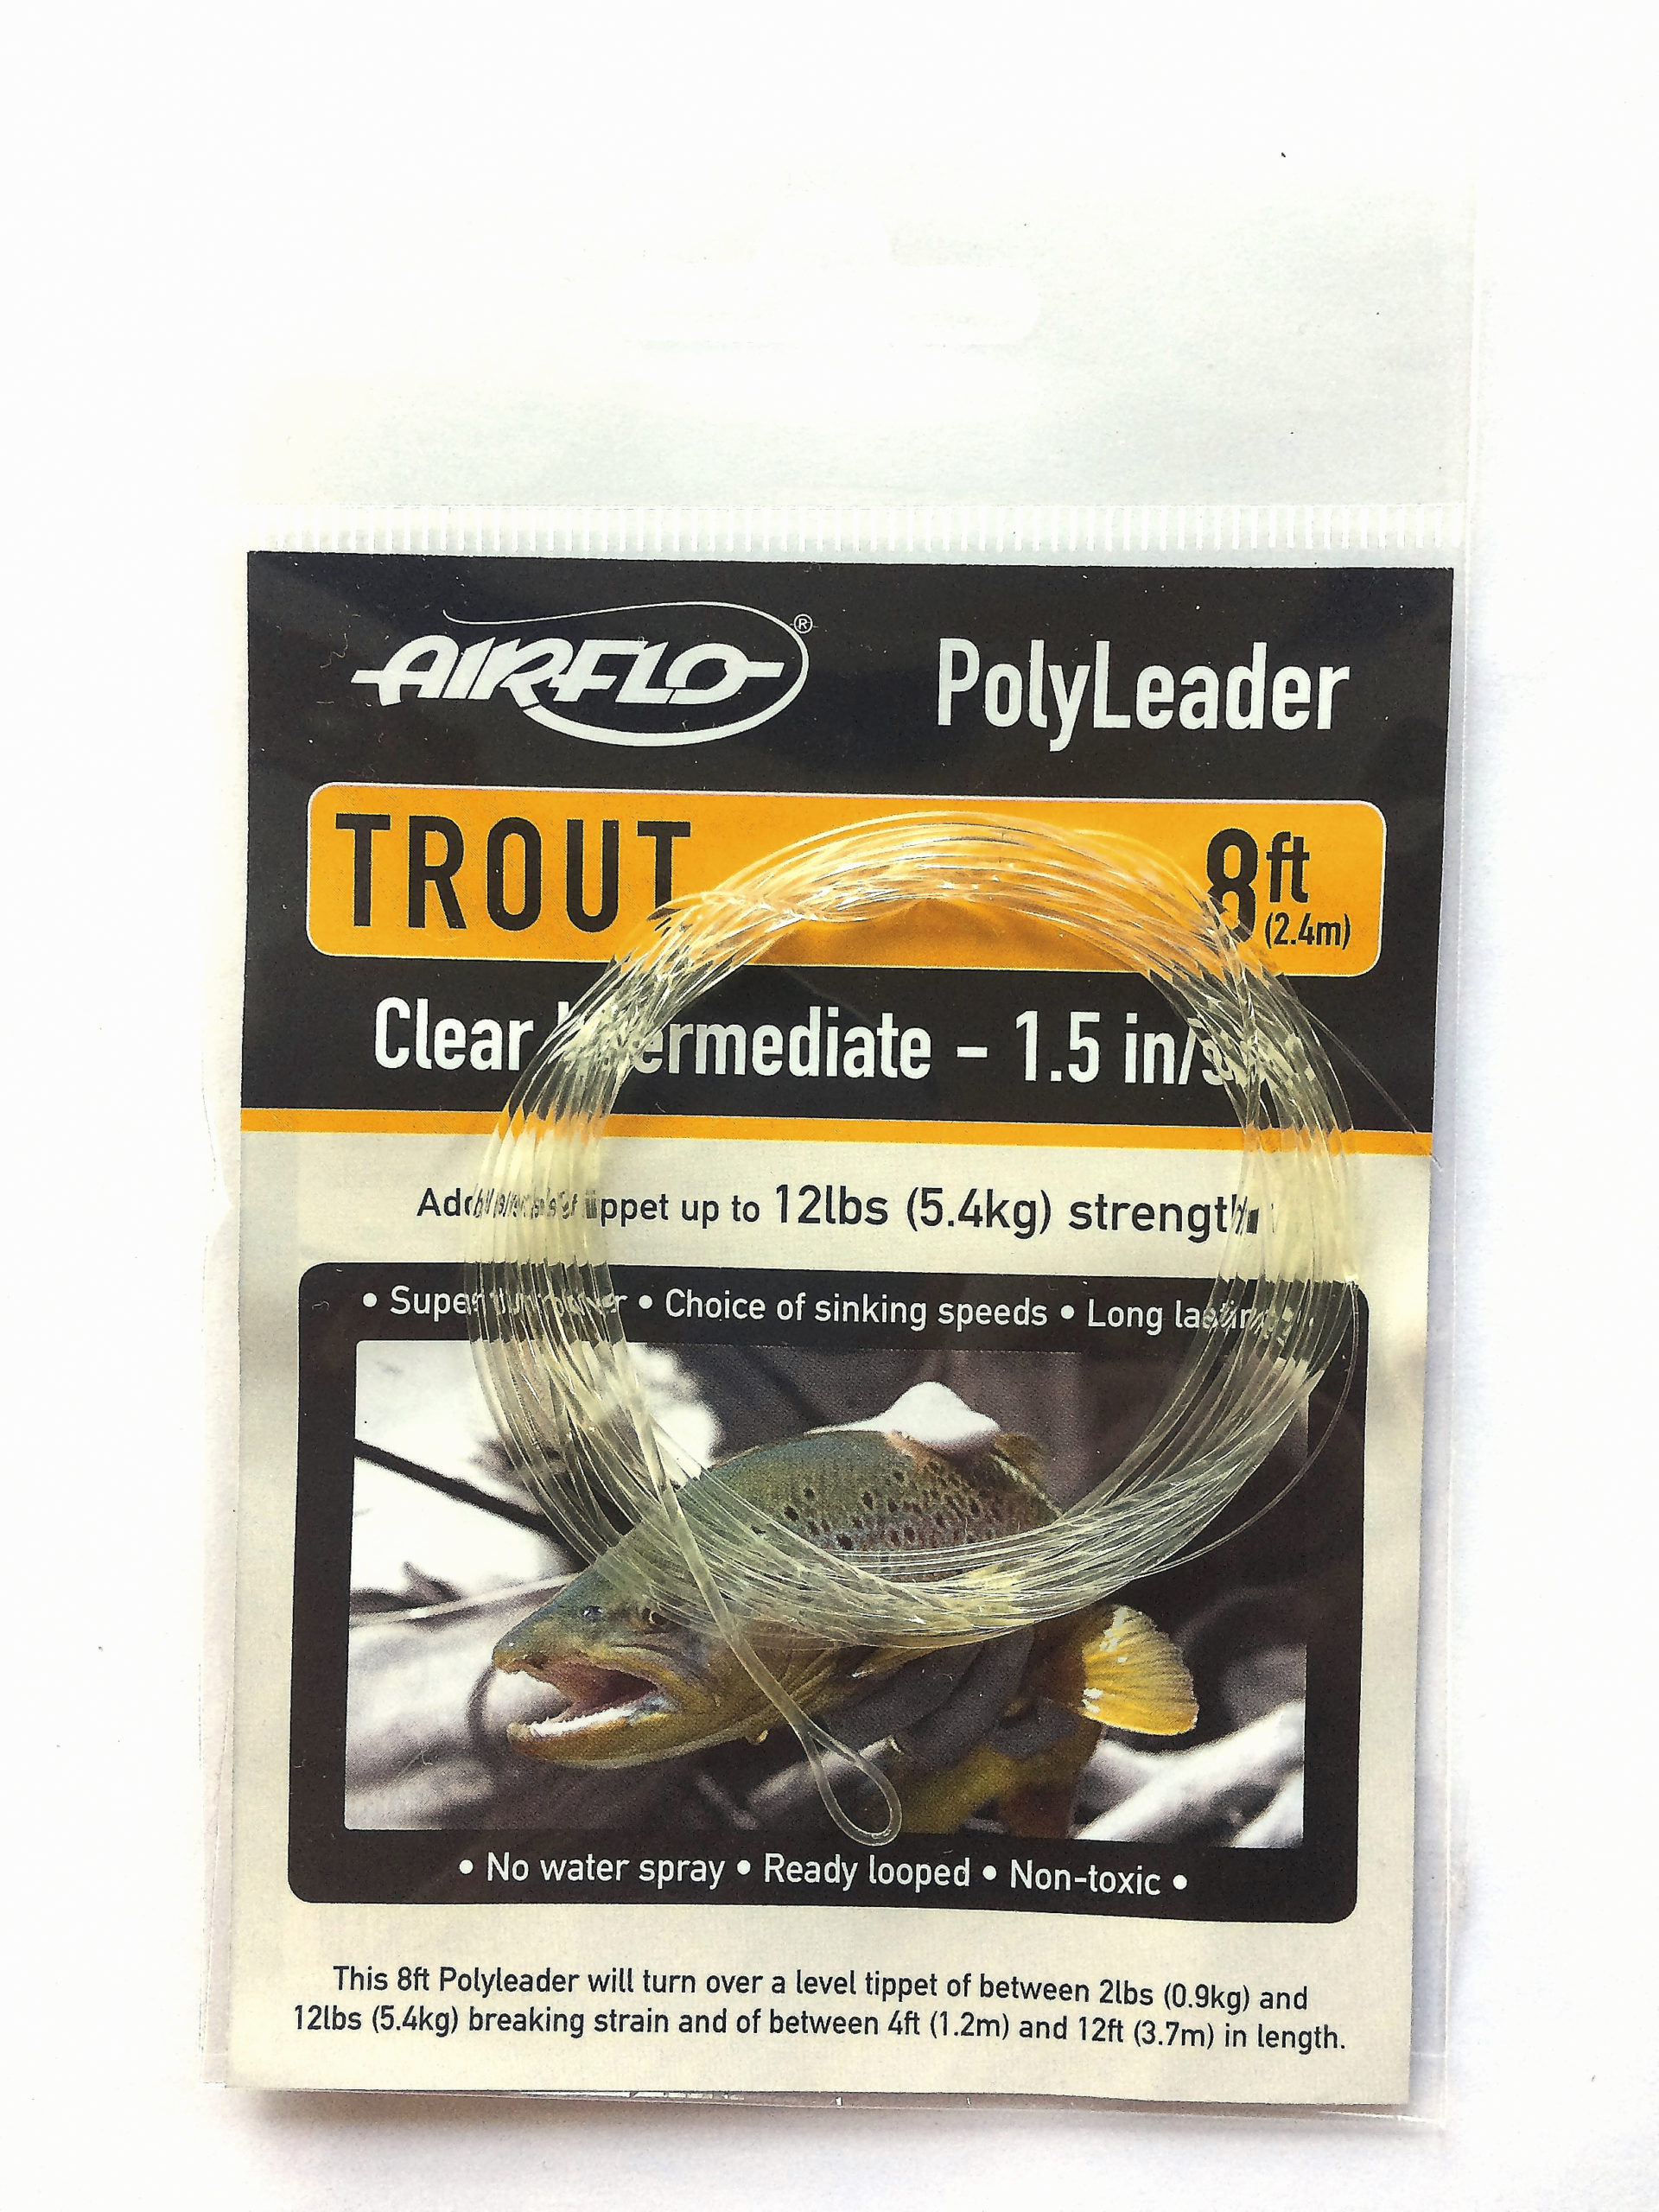 Airflo polyleader Trout Clear intermidiate 1